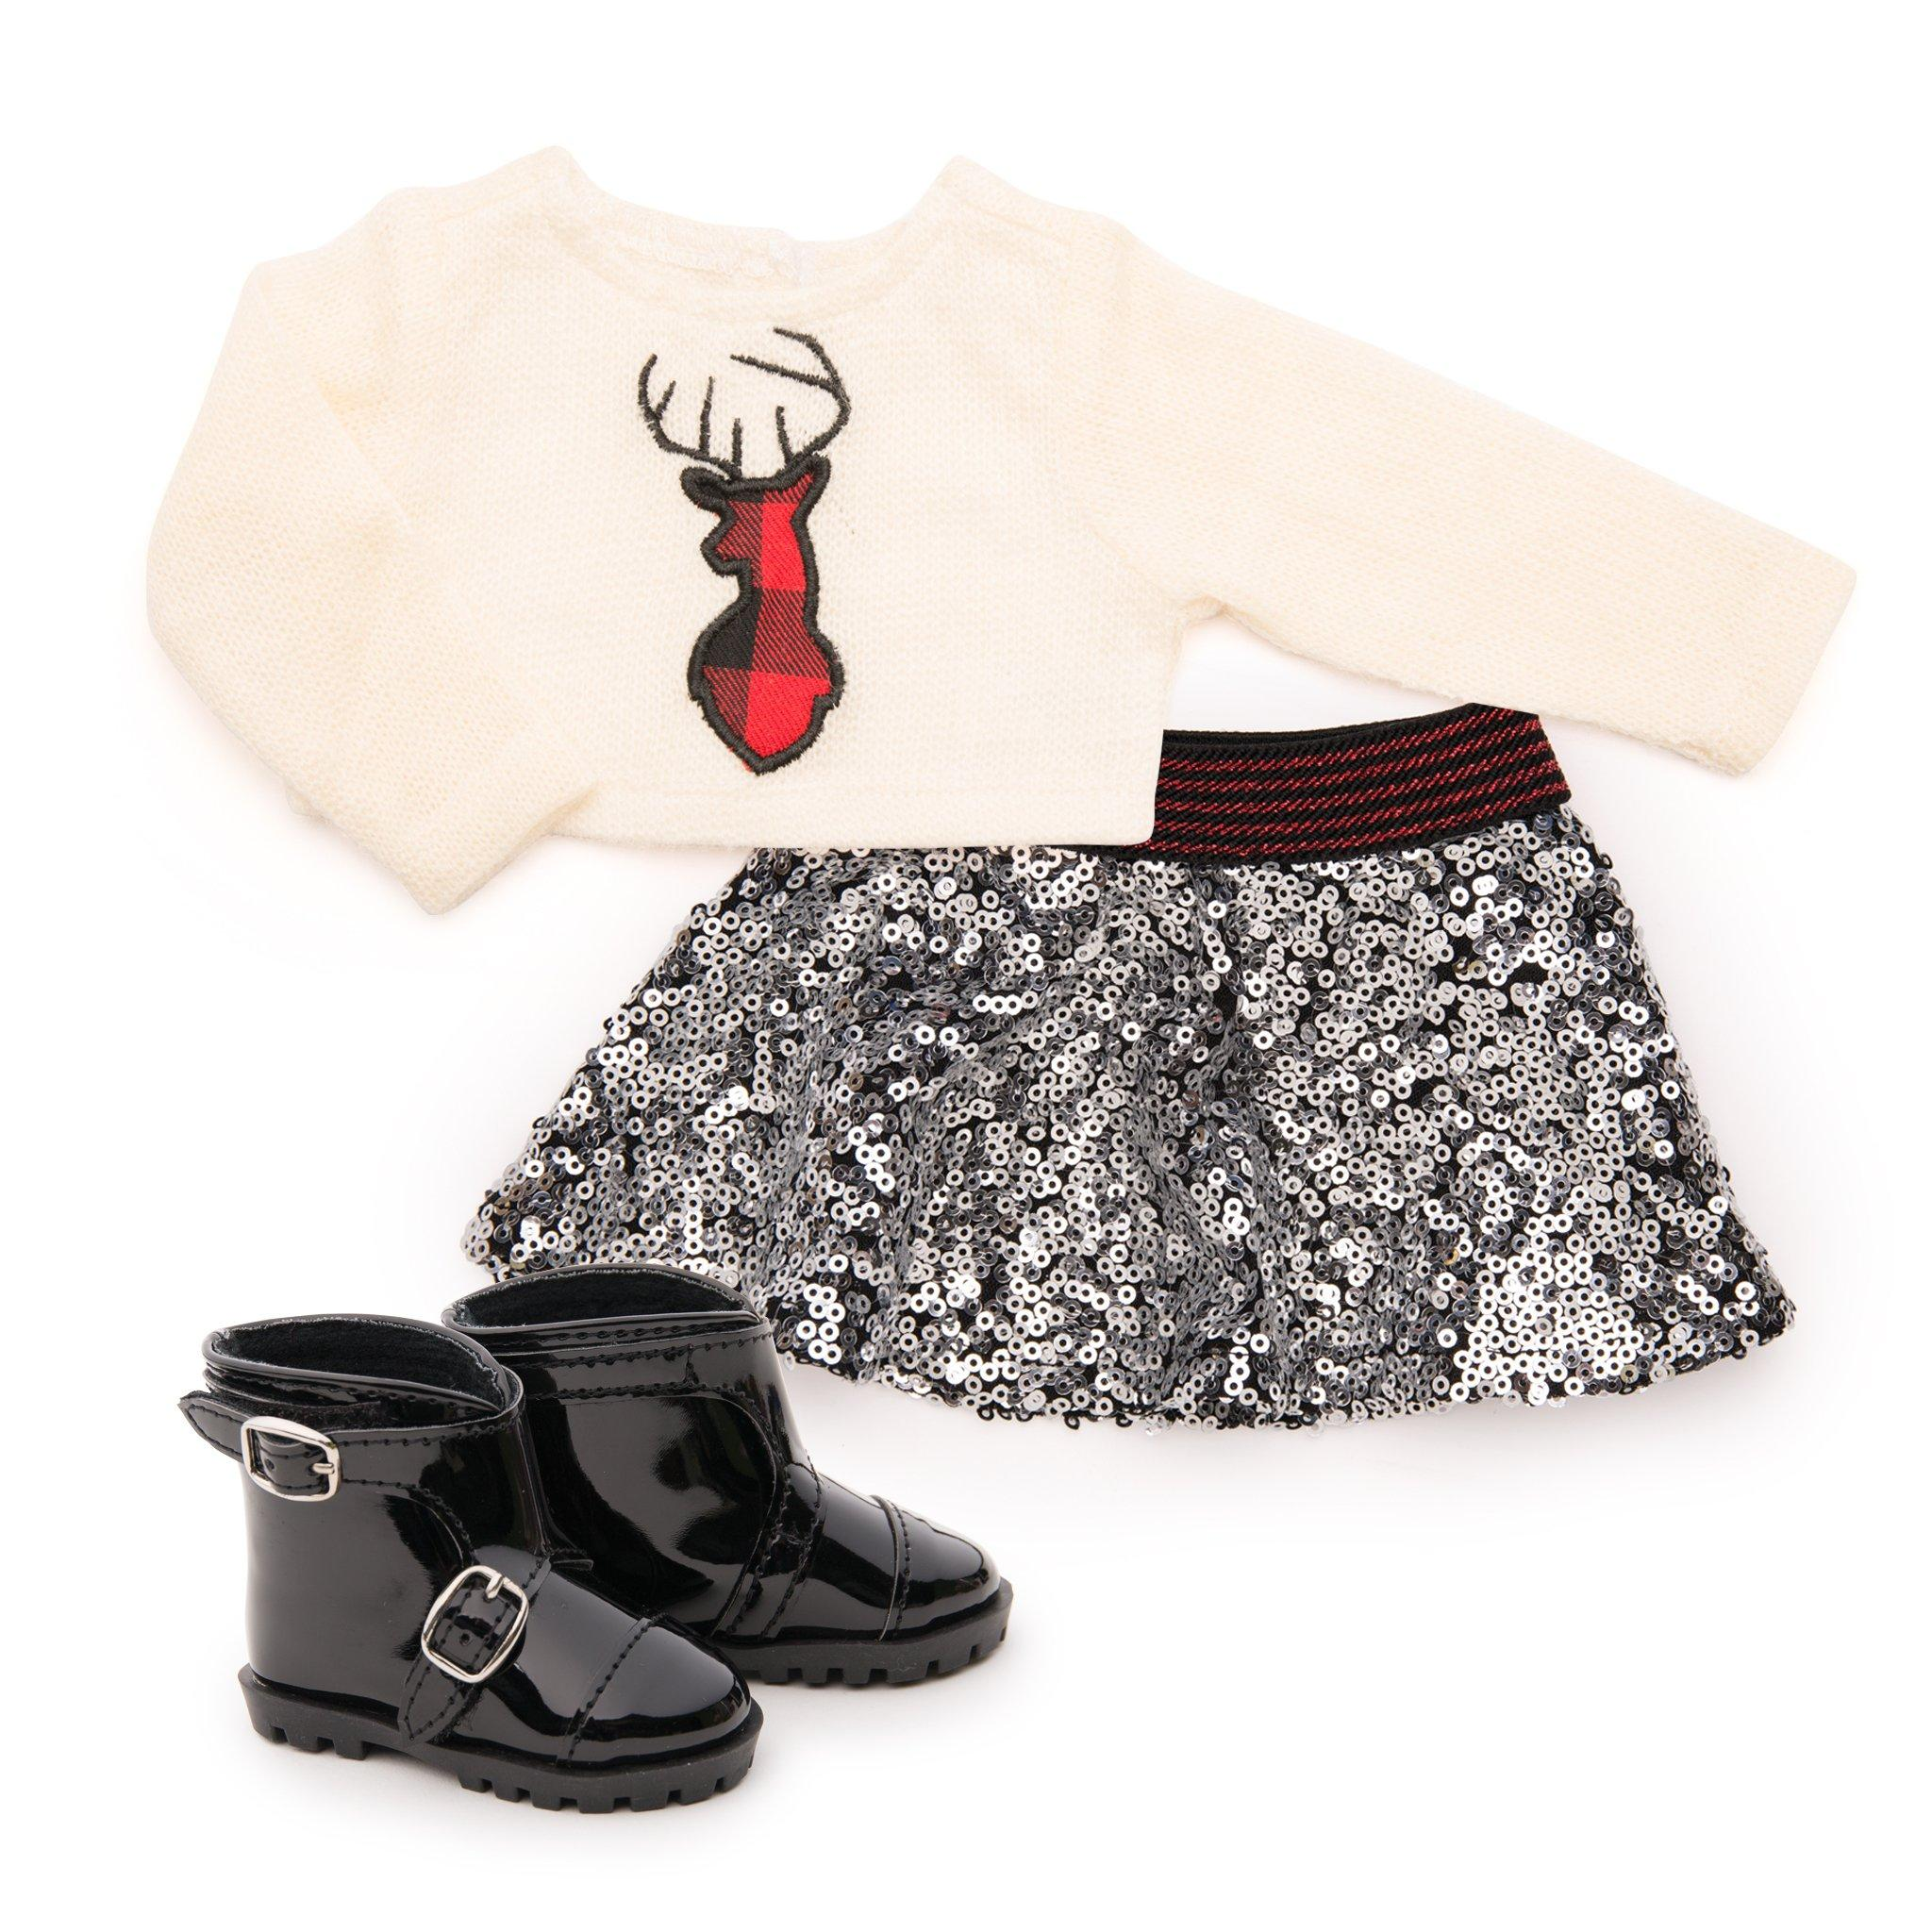 "Knit sweater with buffalo plaid deer silhouette, sequin skirt and boots fits 18"" dolls Maplelea.com"